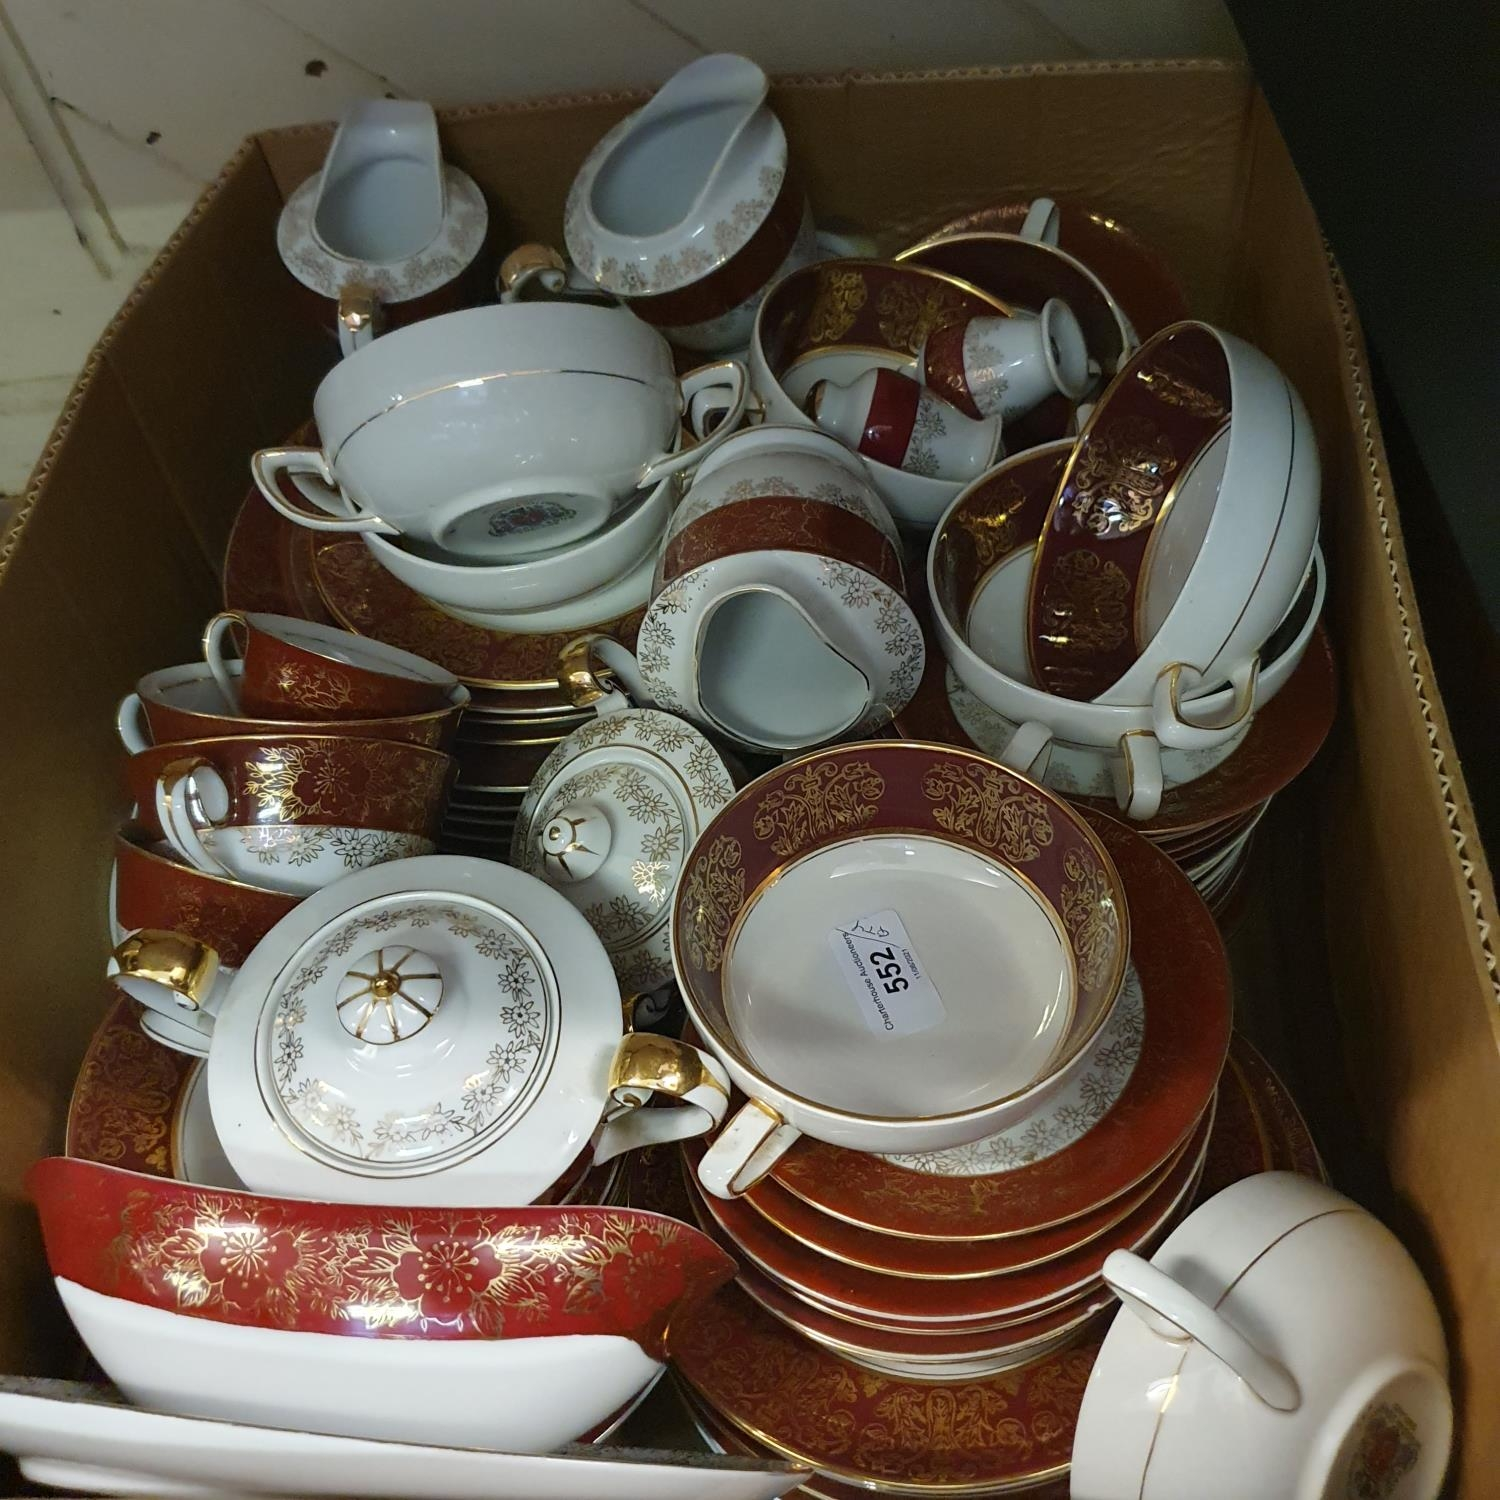 A pair of Staffordshire flat back spaniels, a Royal Doulton part dinner service, other ceramics - Image 12 of 15